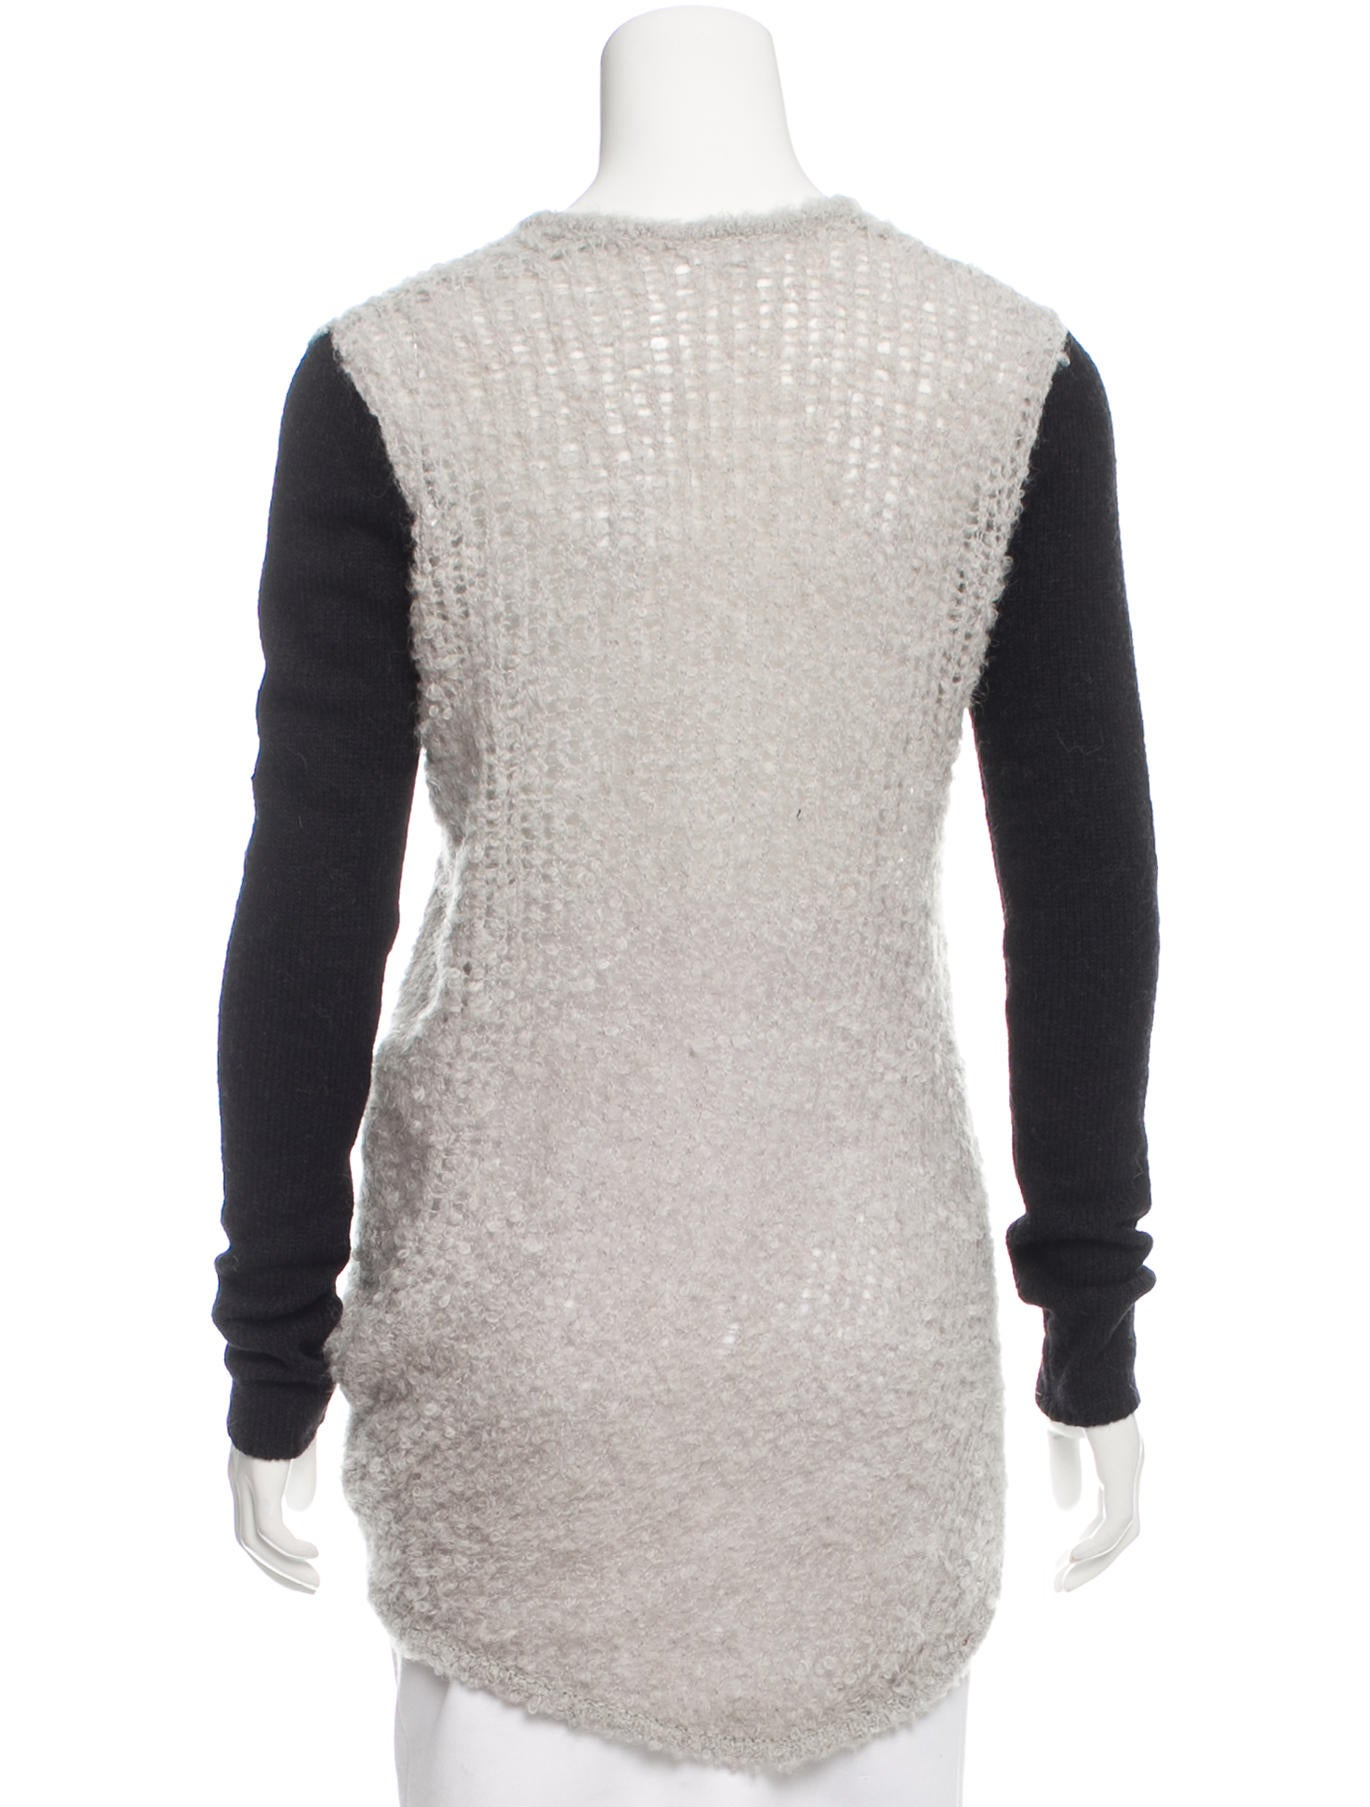 Open Knit Sweater Pattern : Helmut Lang Asymmetrical Open Knit Sweater - Clothing ...